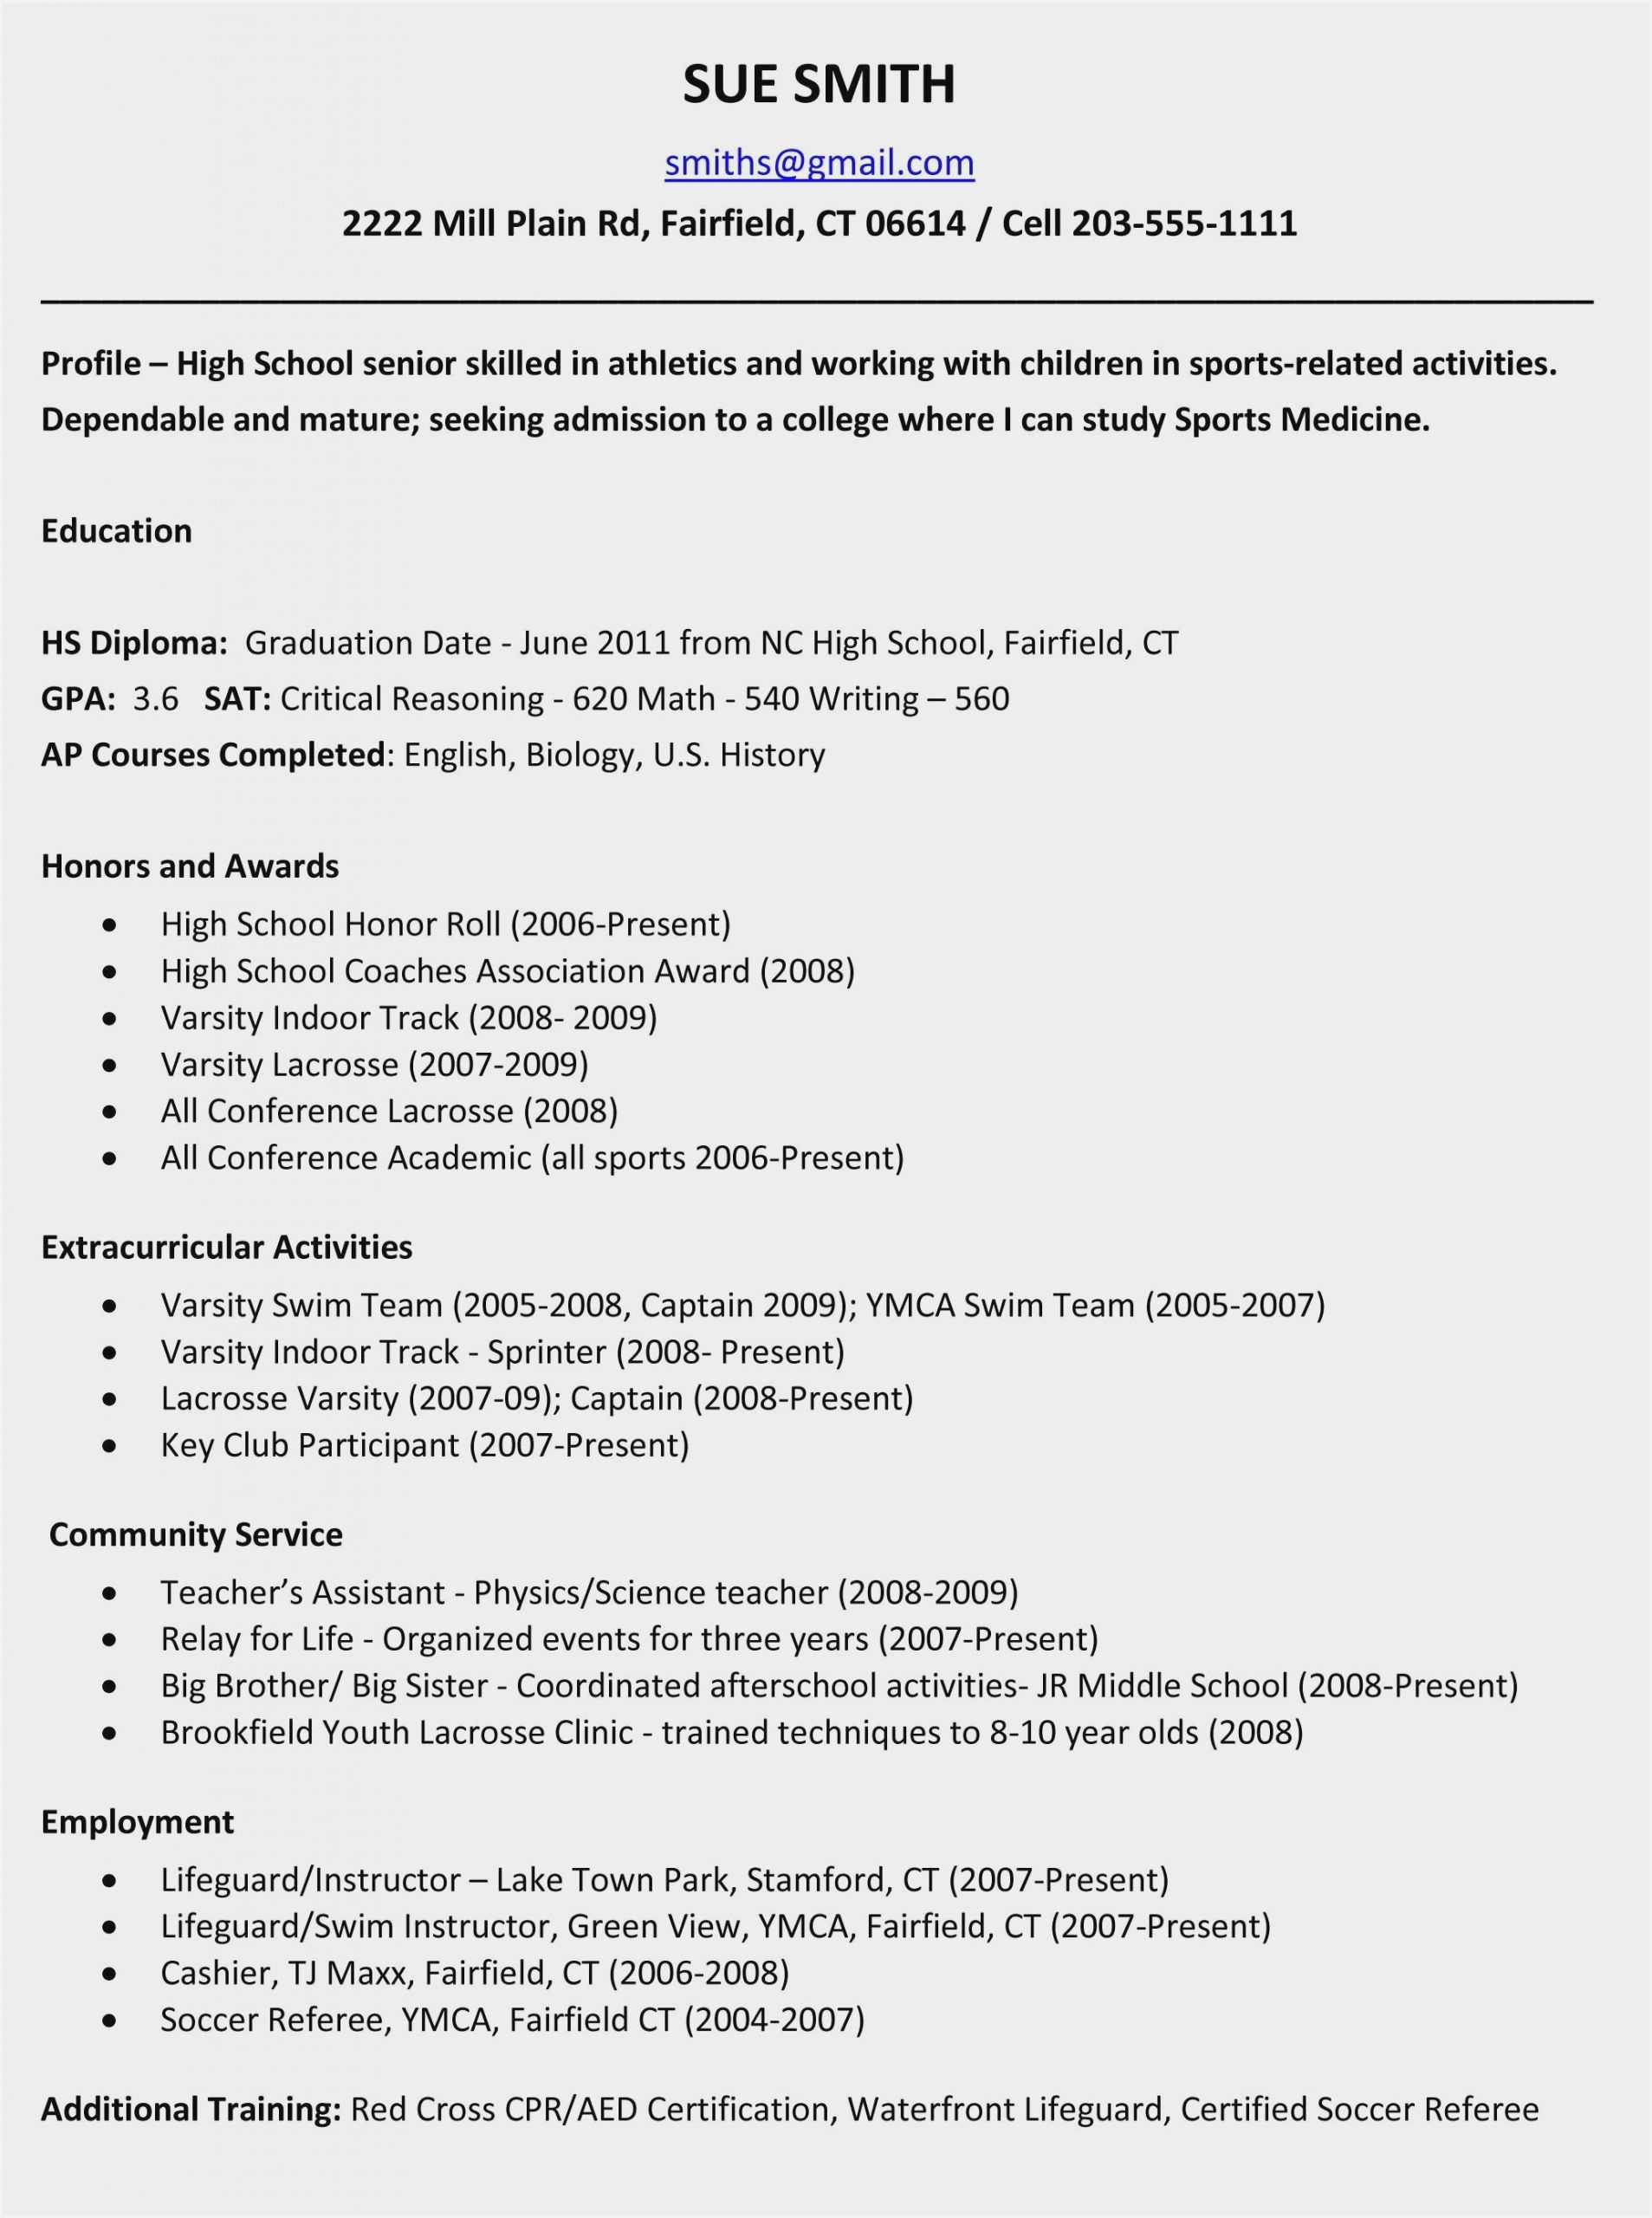 Free Cv Template For High School Student – Resume : Resume Inside College Student Resume Template Microsoft Word